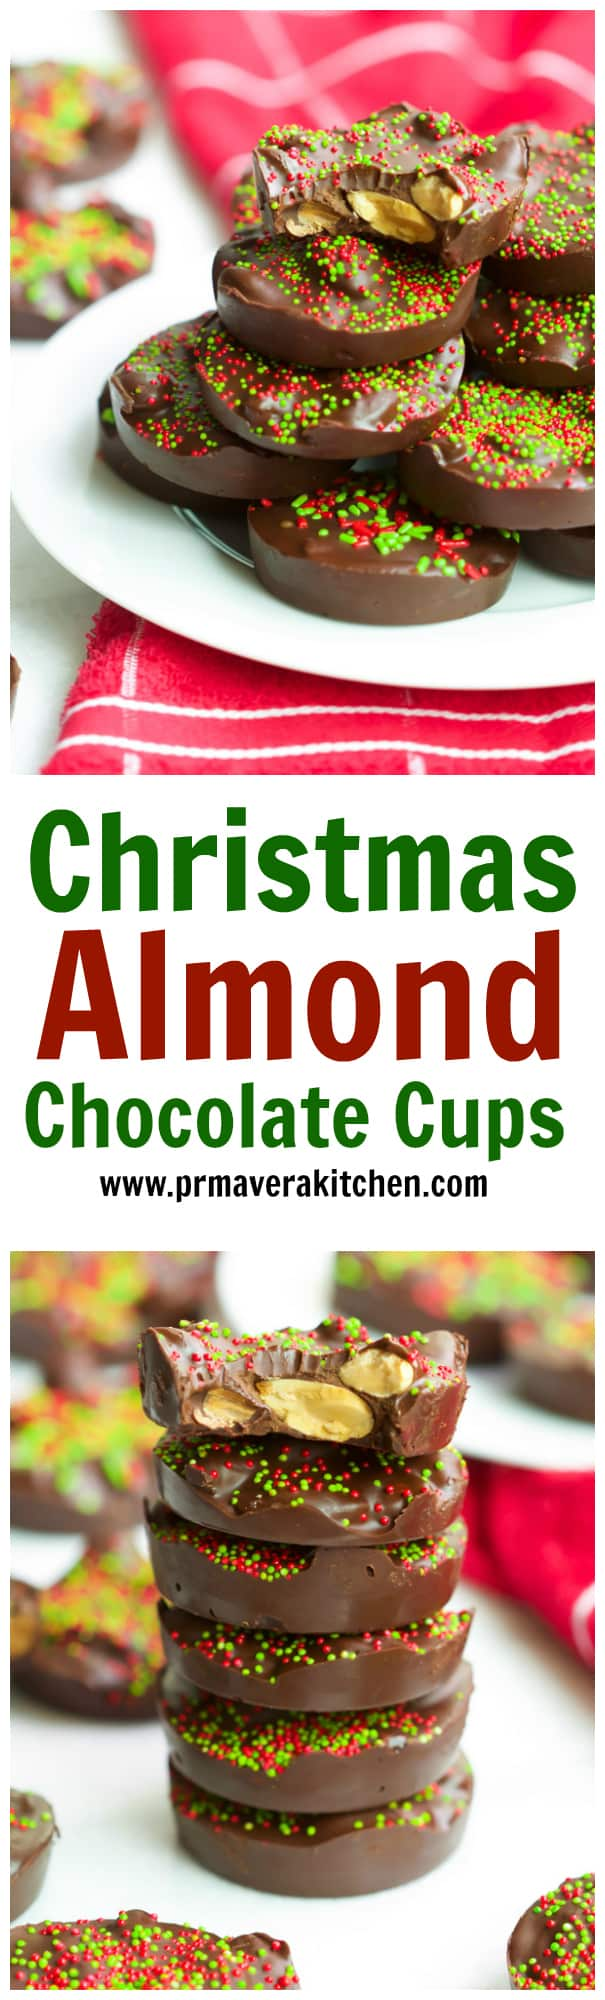 christmas-almond-chocolate-cups - These Christmas Almond Chocolate Cups are made with only 3-Ingredients and they require no baking. It's ultra-easy to make, delicious, gluten-free and vegan too!